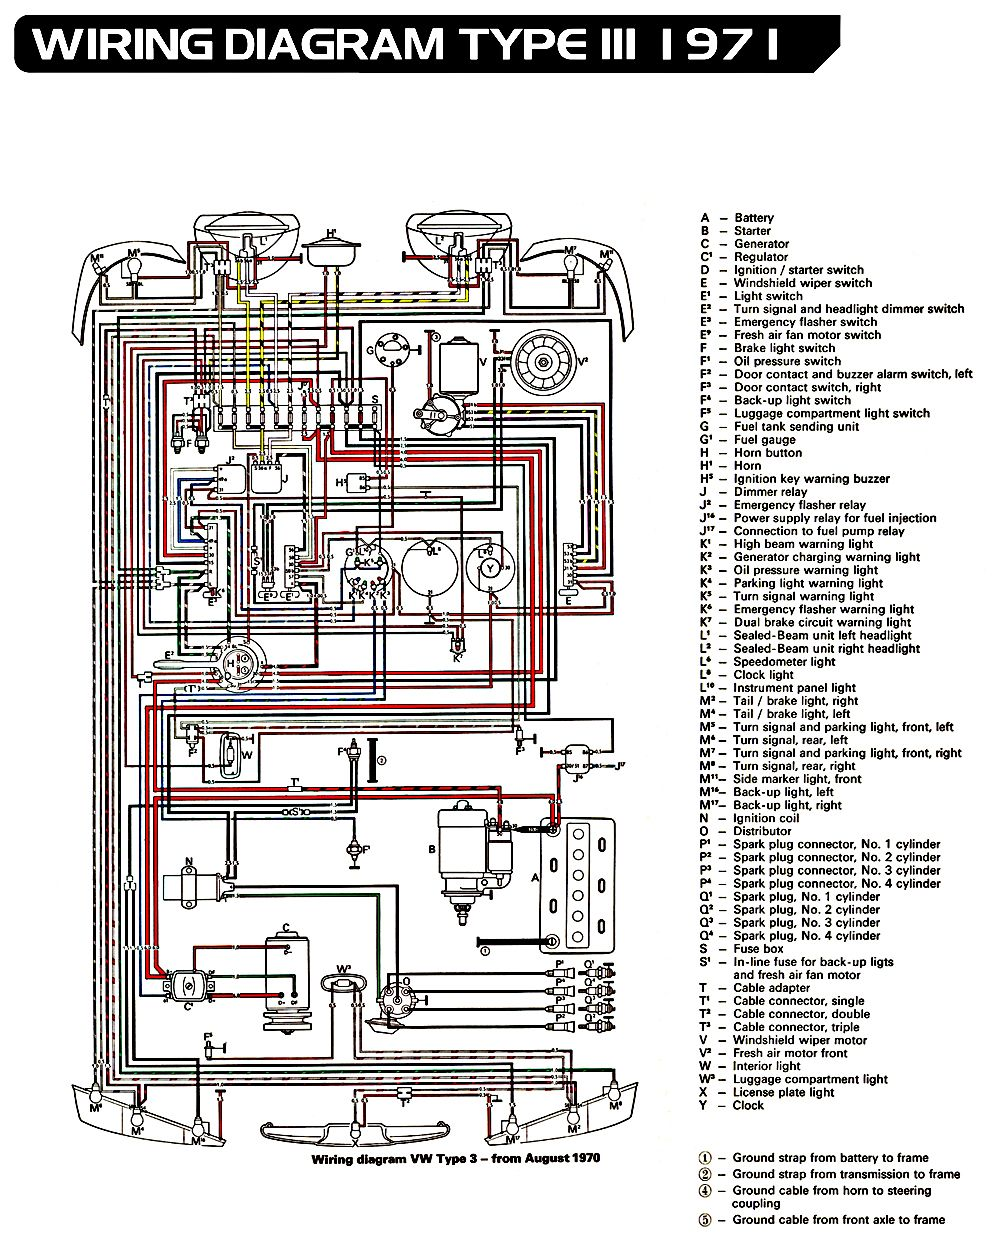 1971 Type 3 Vw Wiring Diagram So Simple Compared To A Modern Ecu Enabled Car Vw Vocho Vochos Clasicos Volkswagen Escarabajo